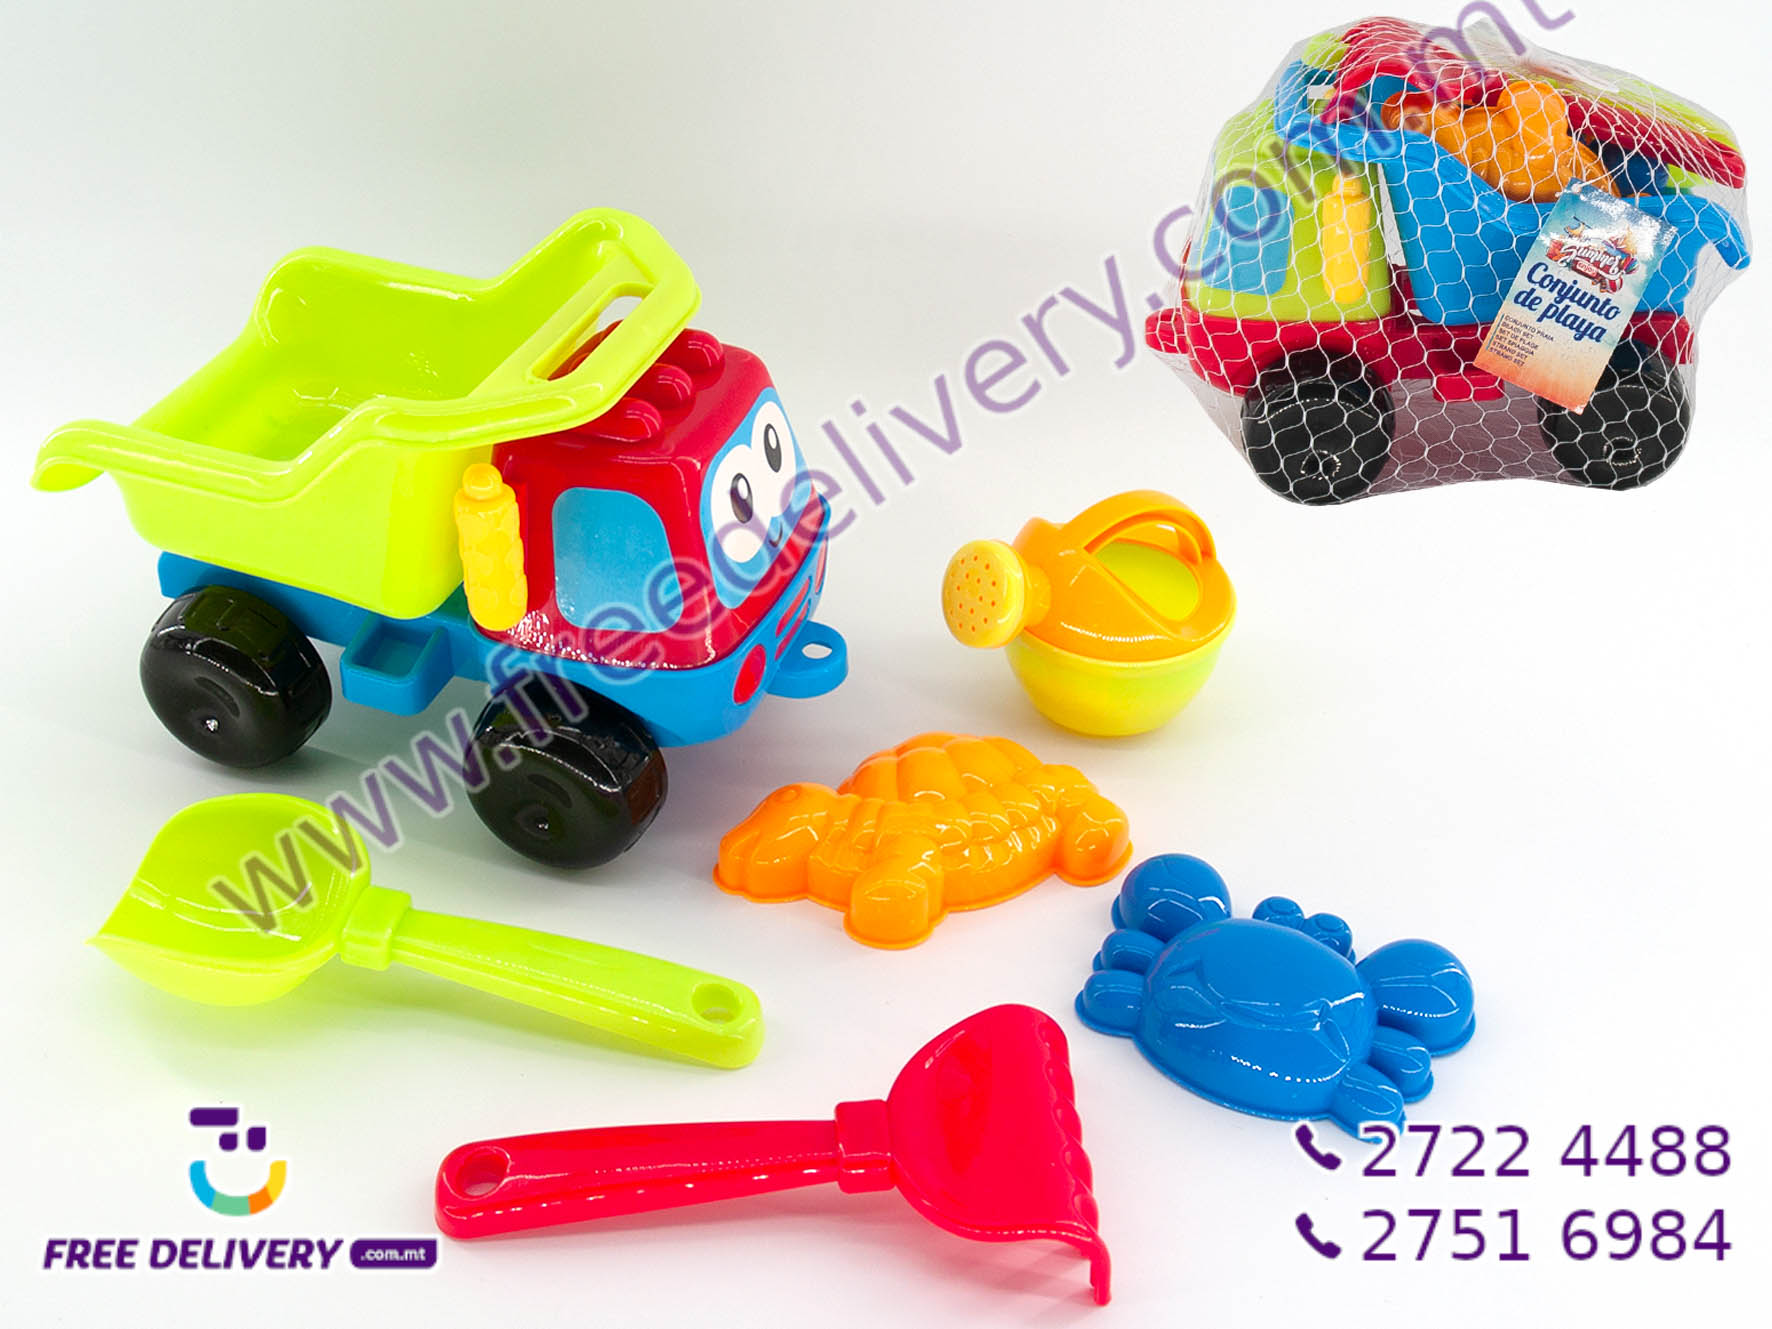 6 PIECE SAND TOY TRUCK SET GE755993